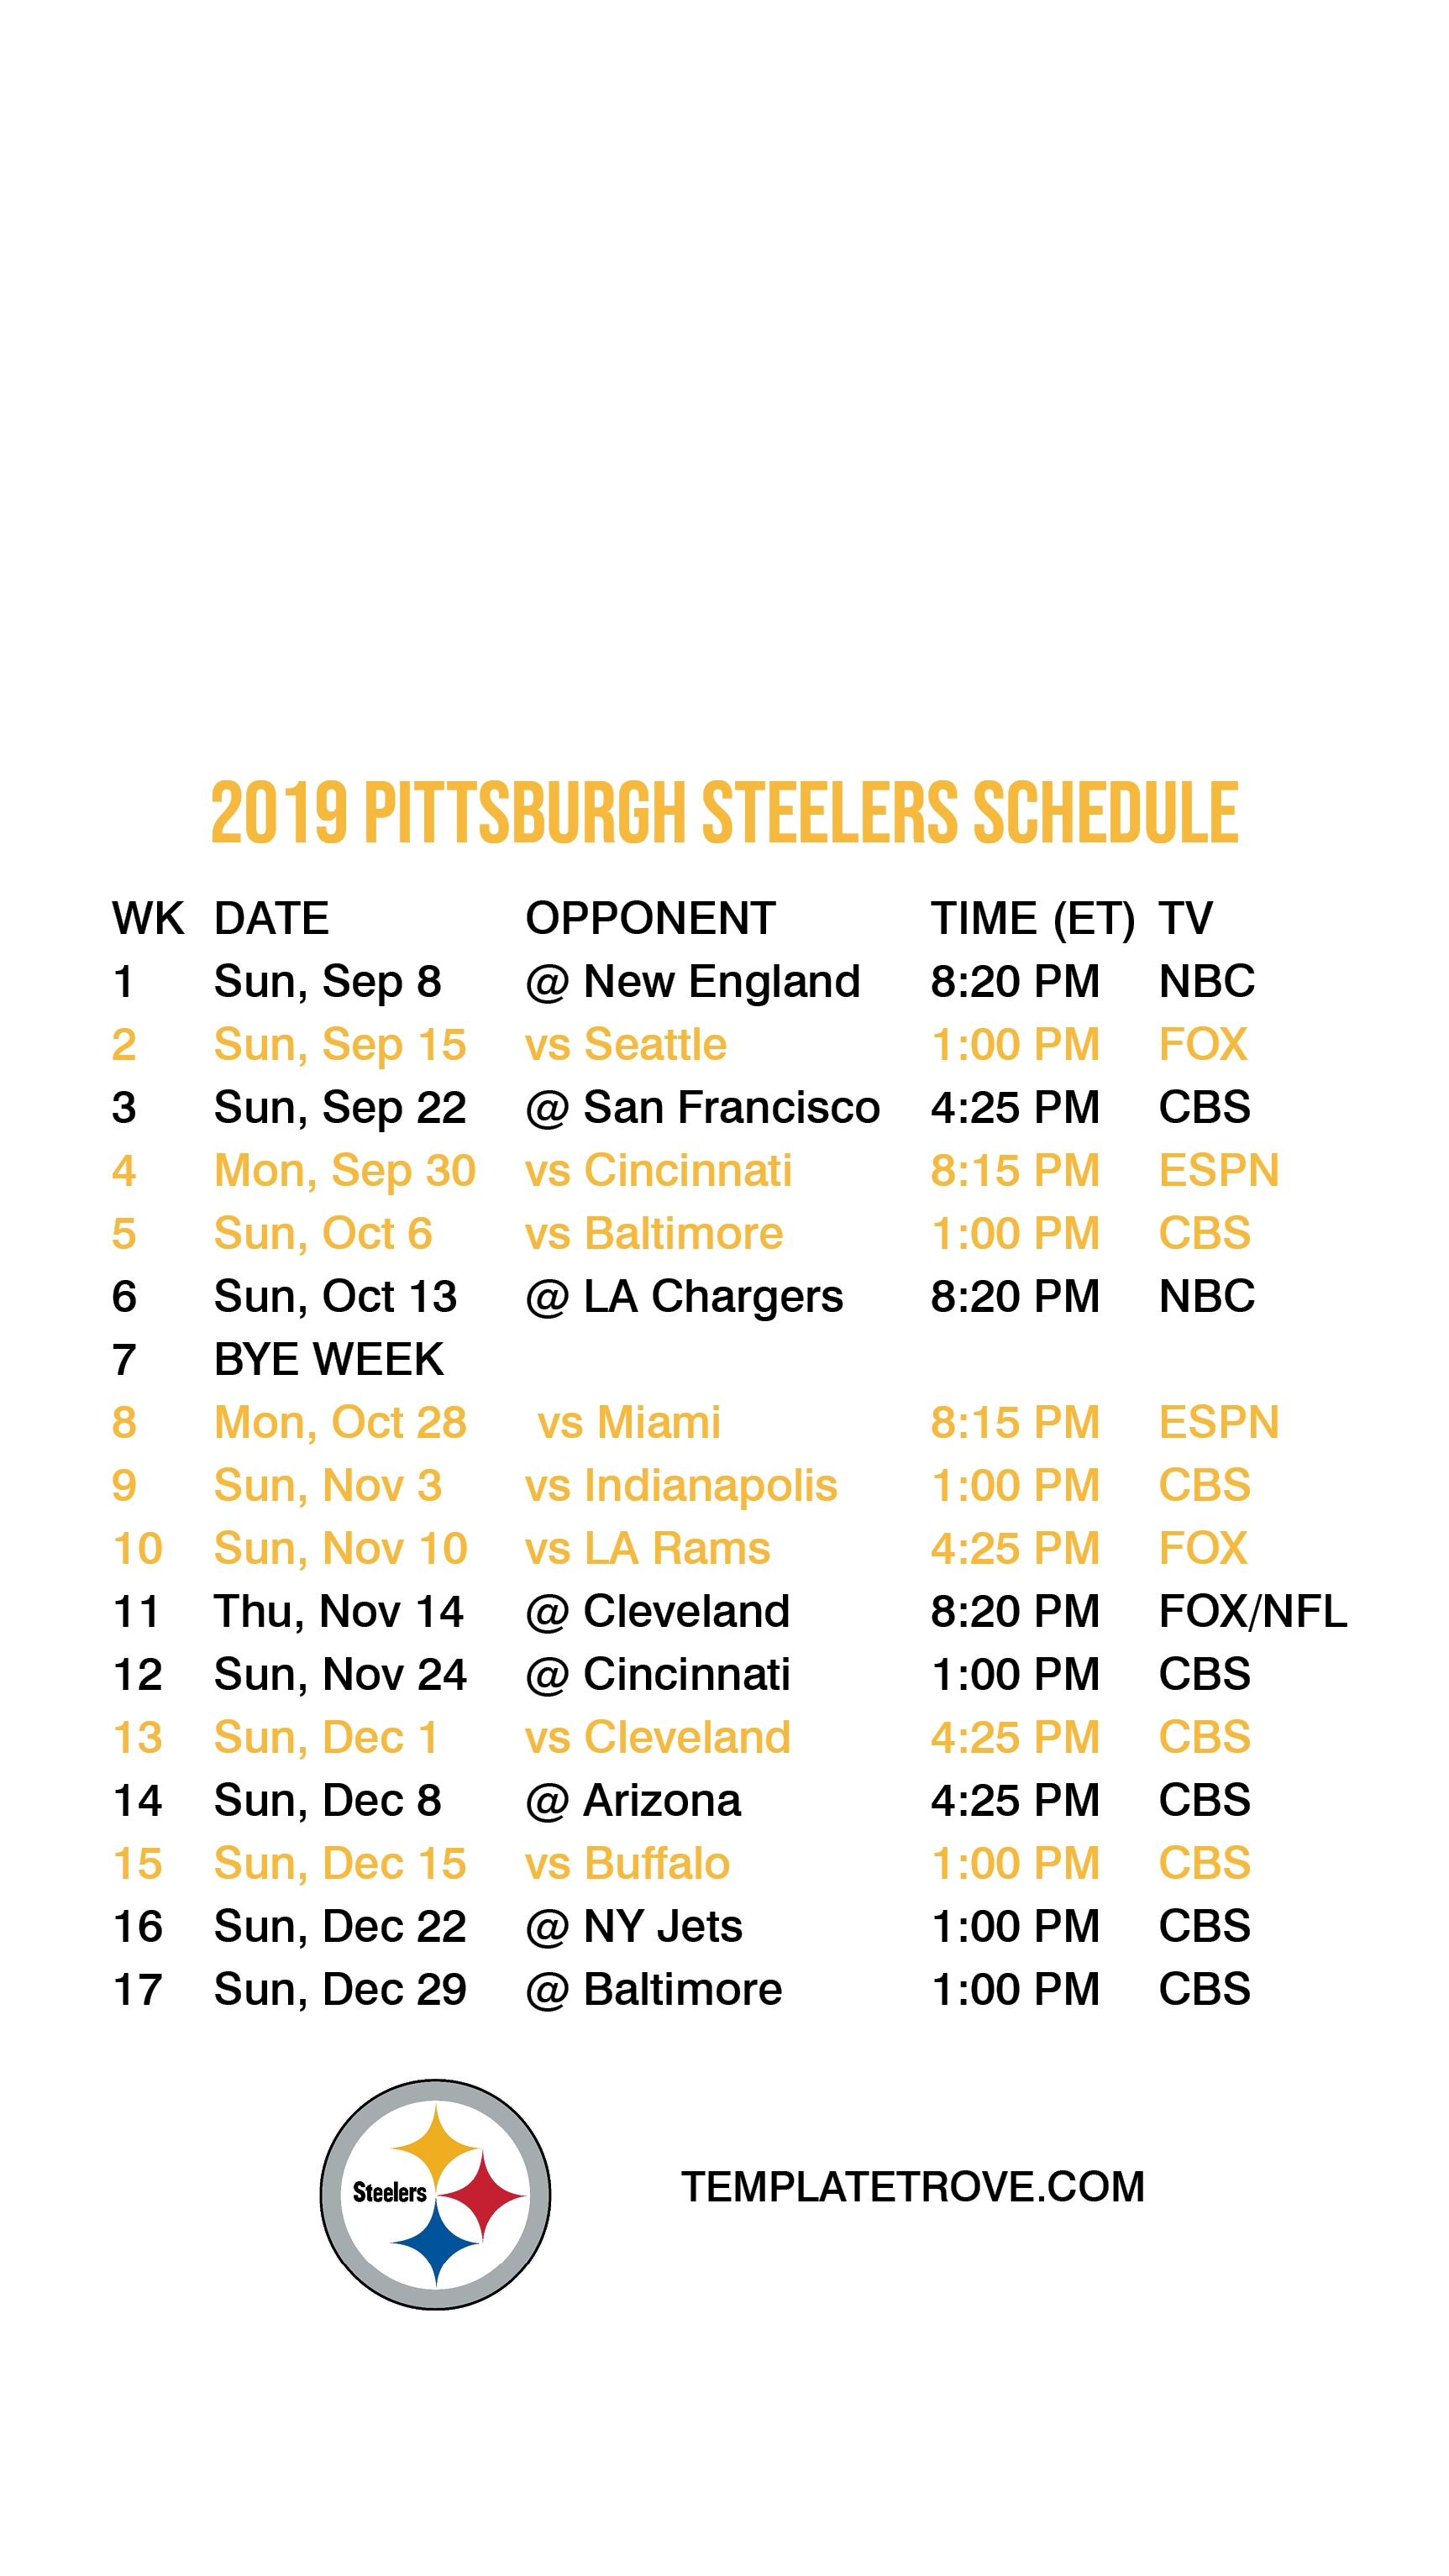 2019-2020 Pittsburgh Steelers Lock Screen Schedule For inside Printable Nfl Schedule For 2019 2020